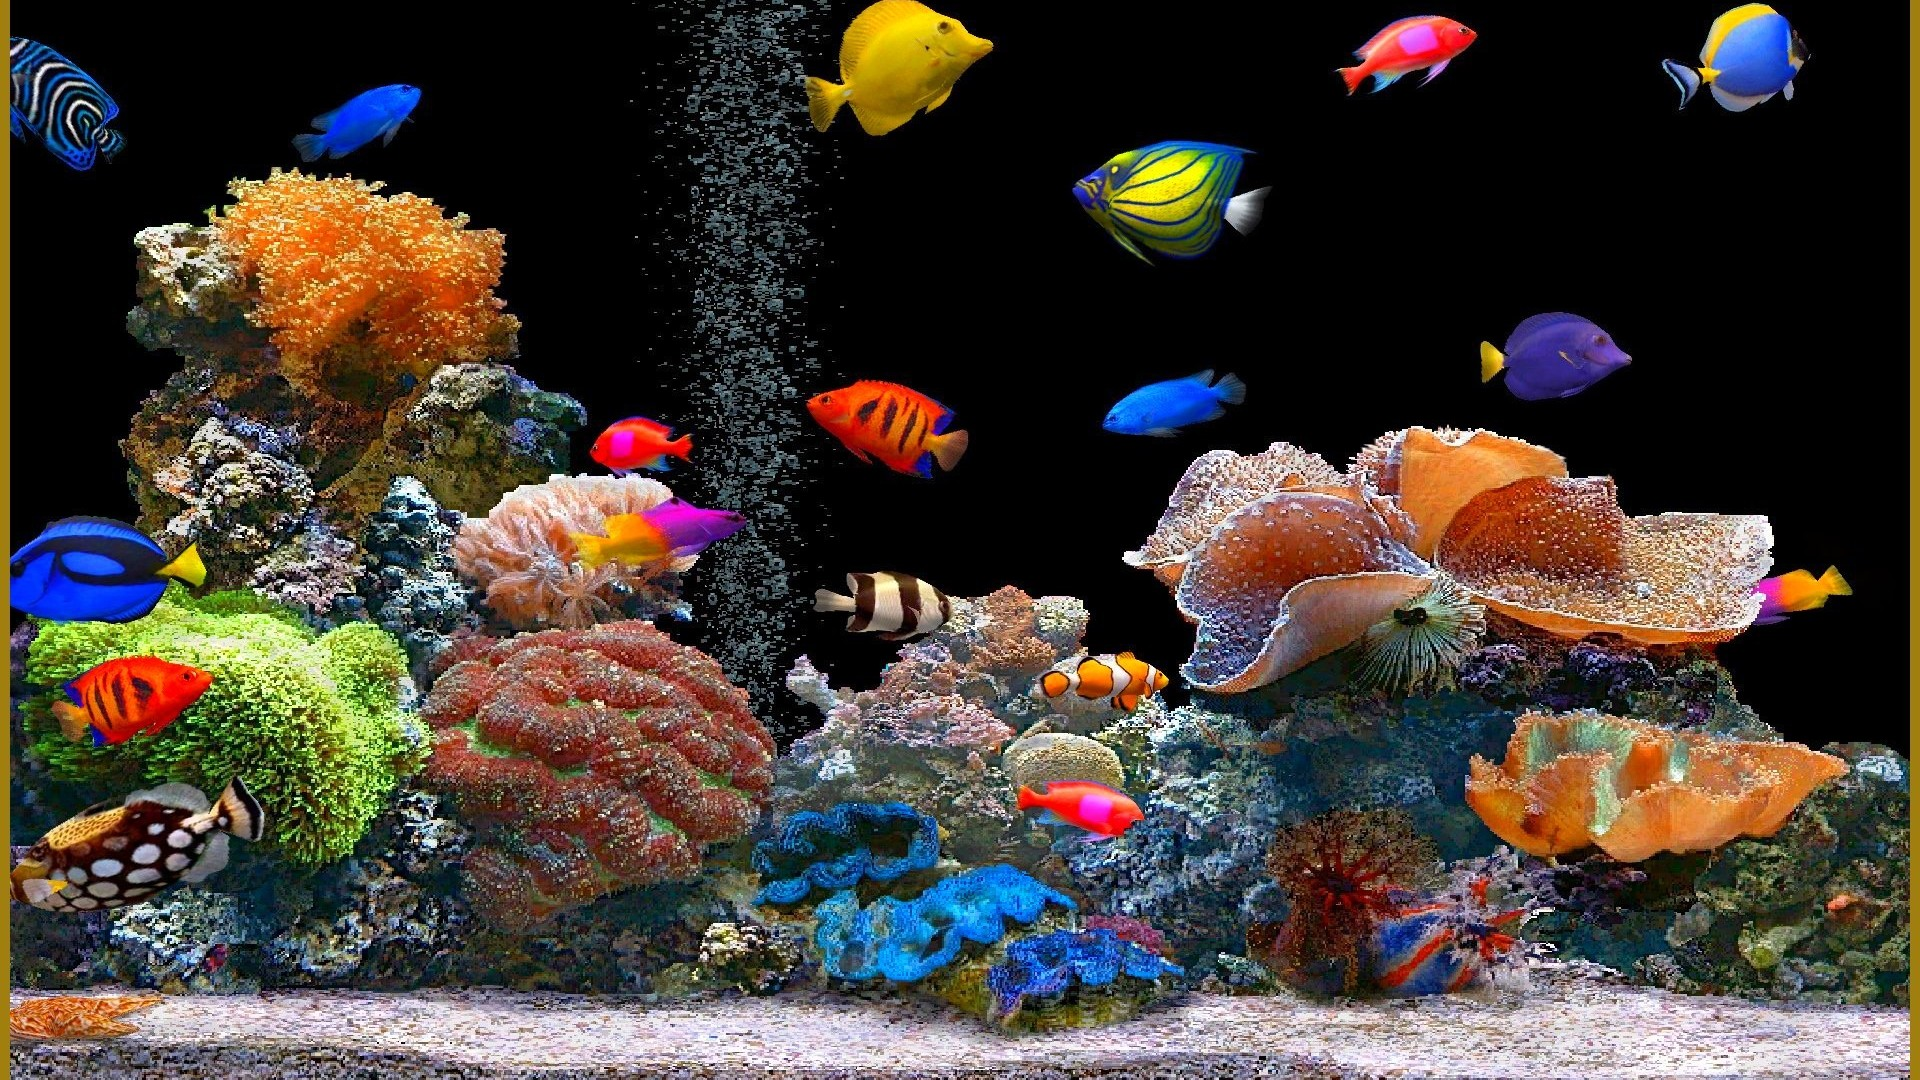 Animated Desktop Wallpaper Fish for Windows 81 All for Windows 10 1920x1080